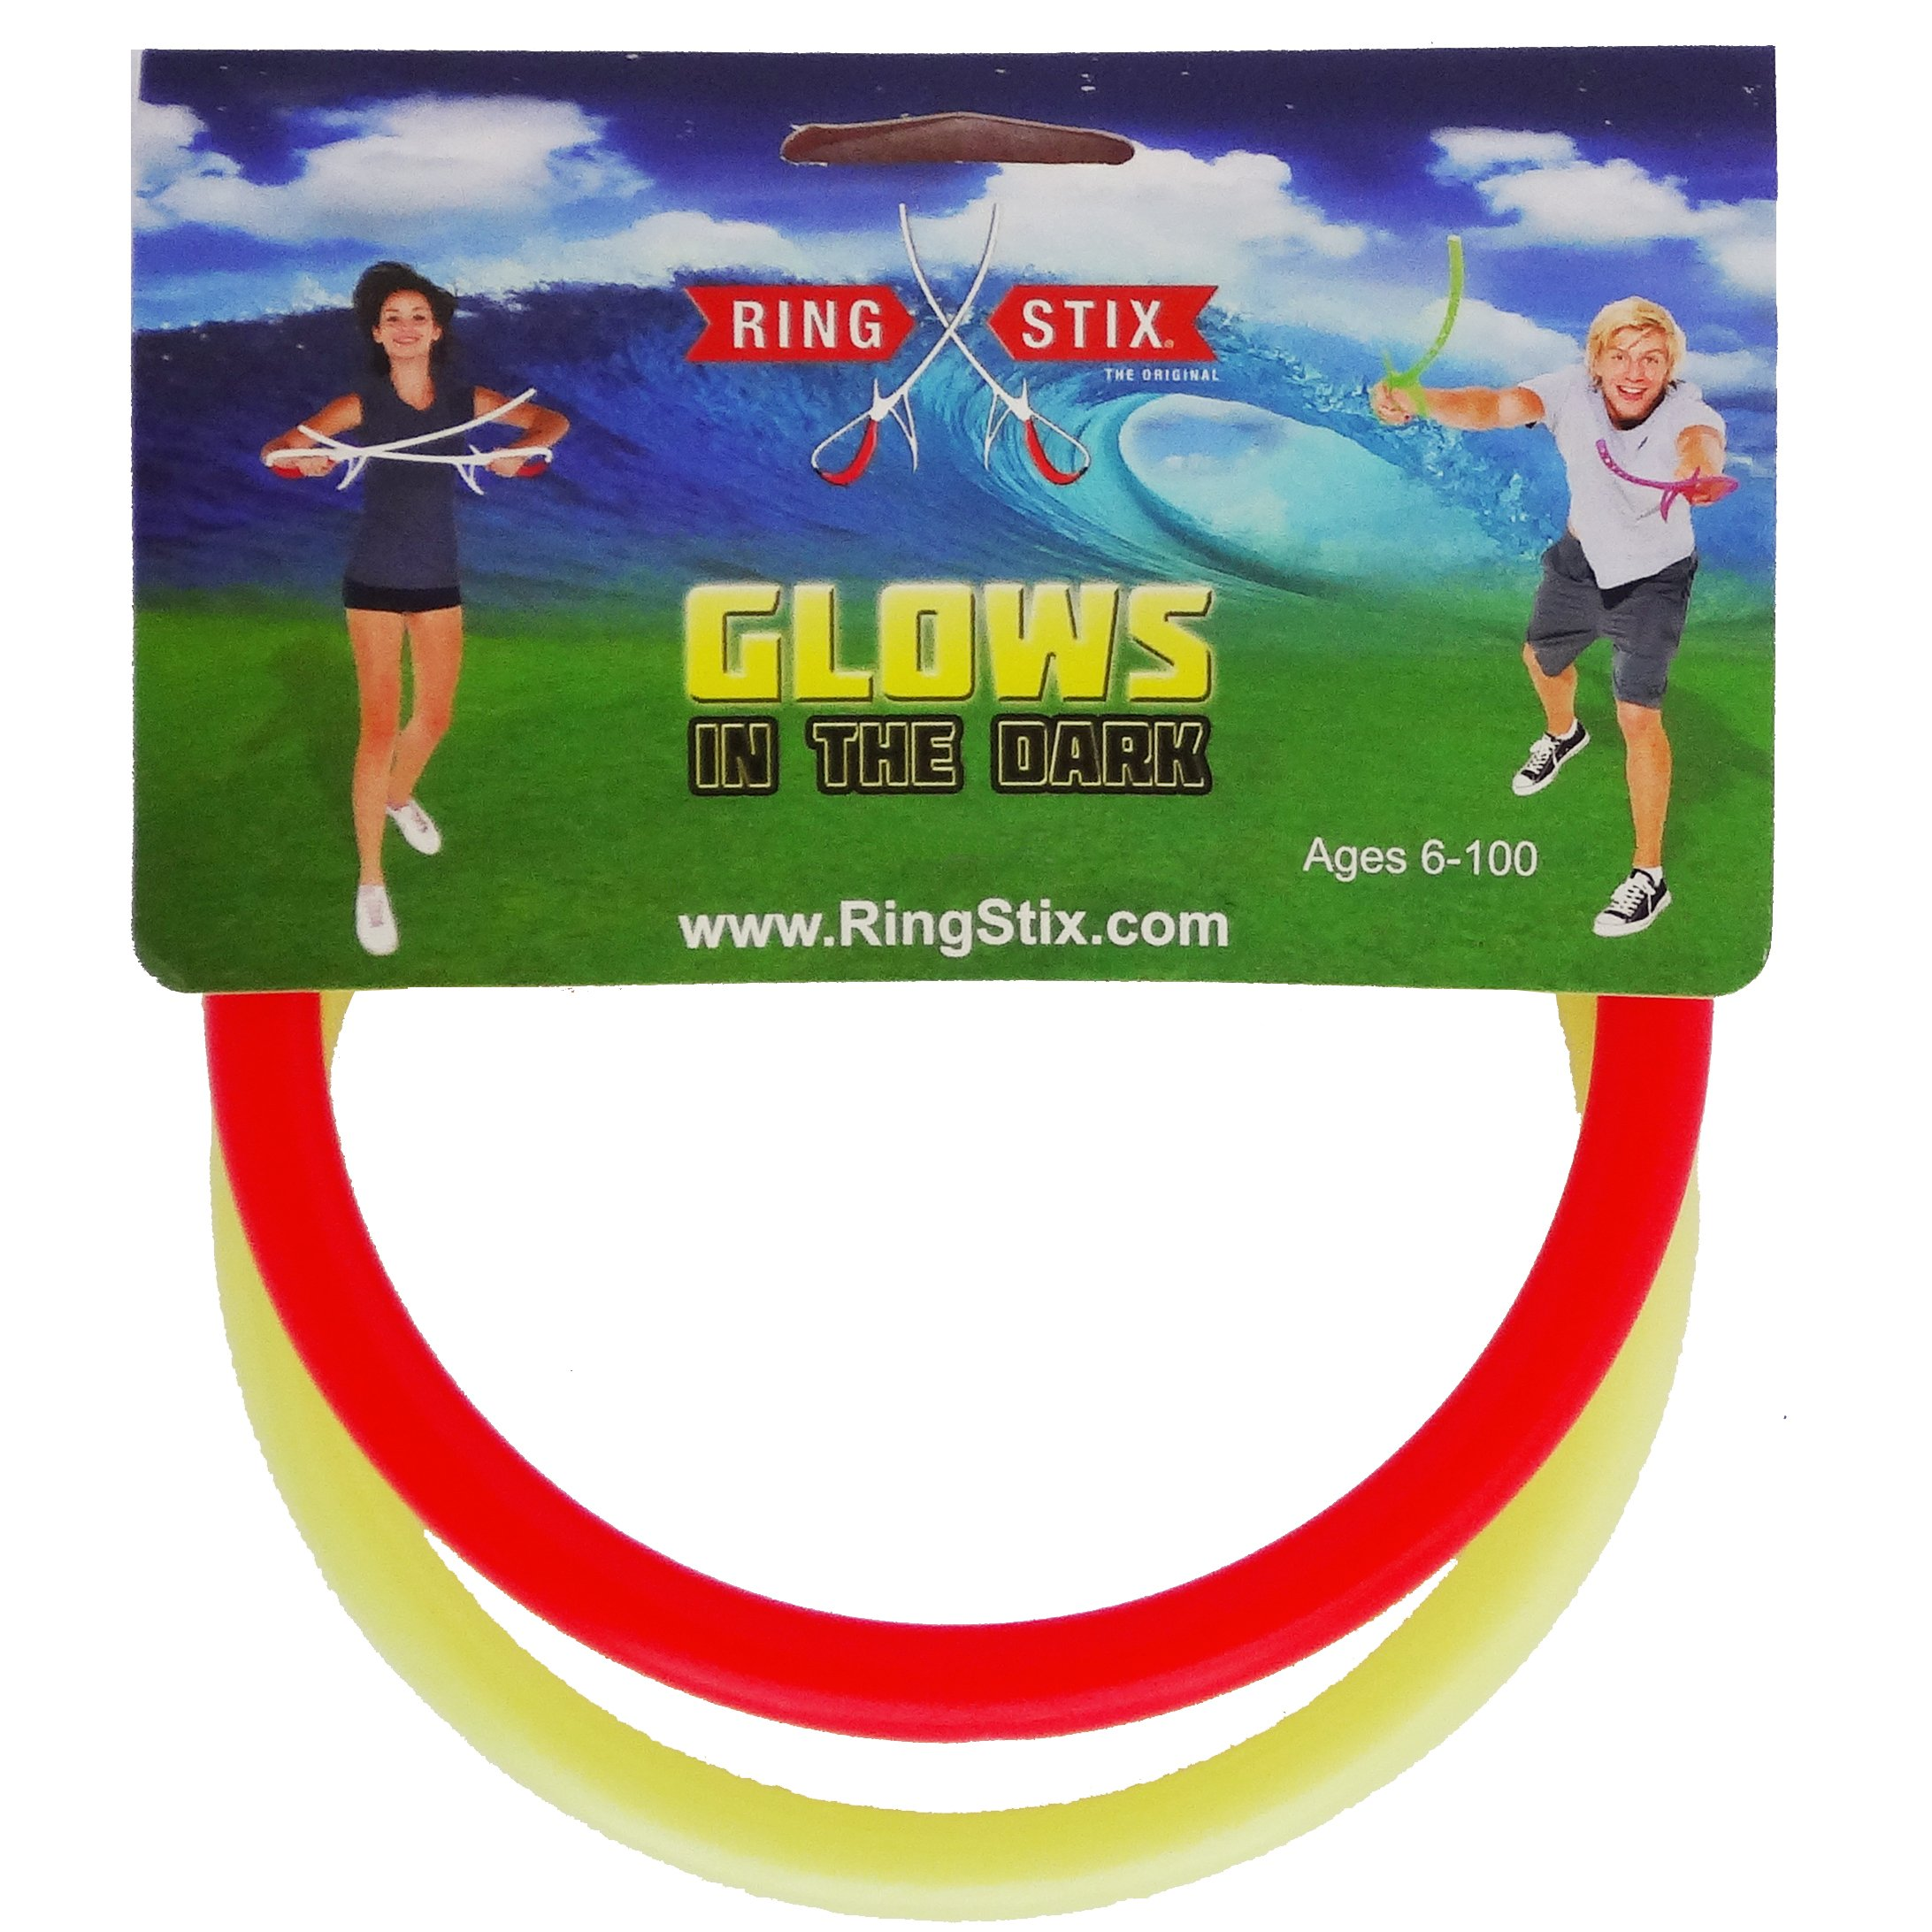 RingStix - Spare Rings - Red and Glow-in-The-Dark by Funsparks